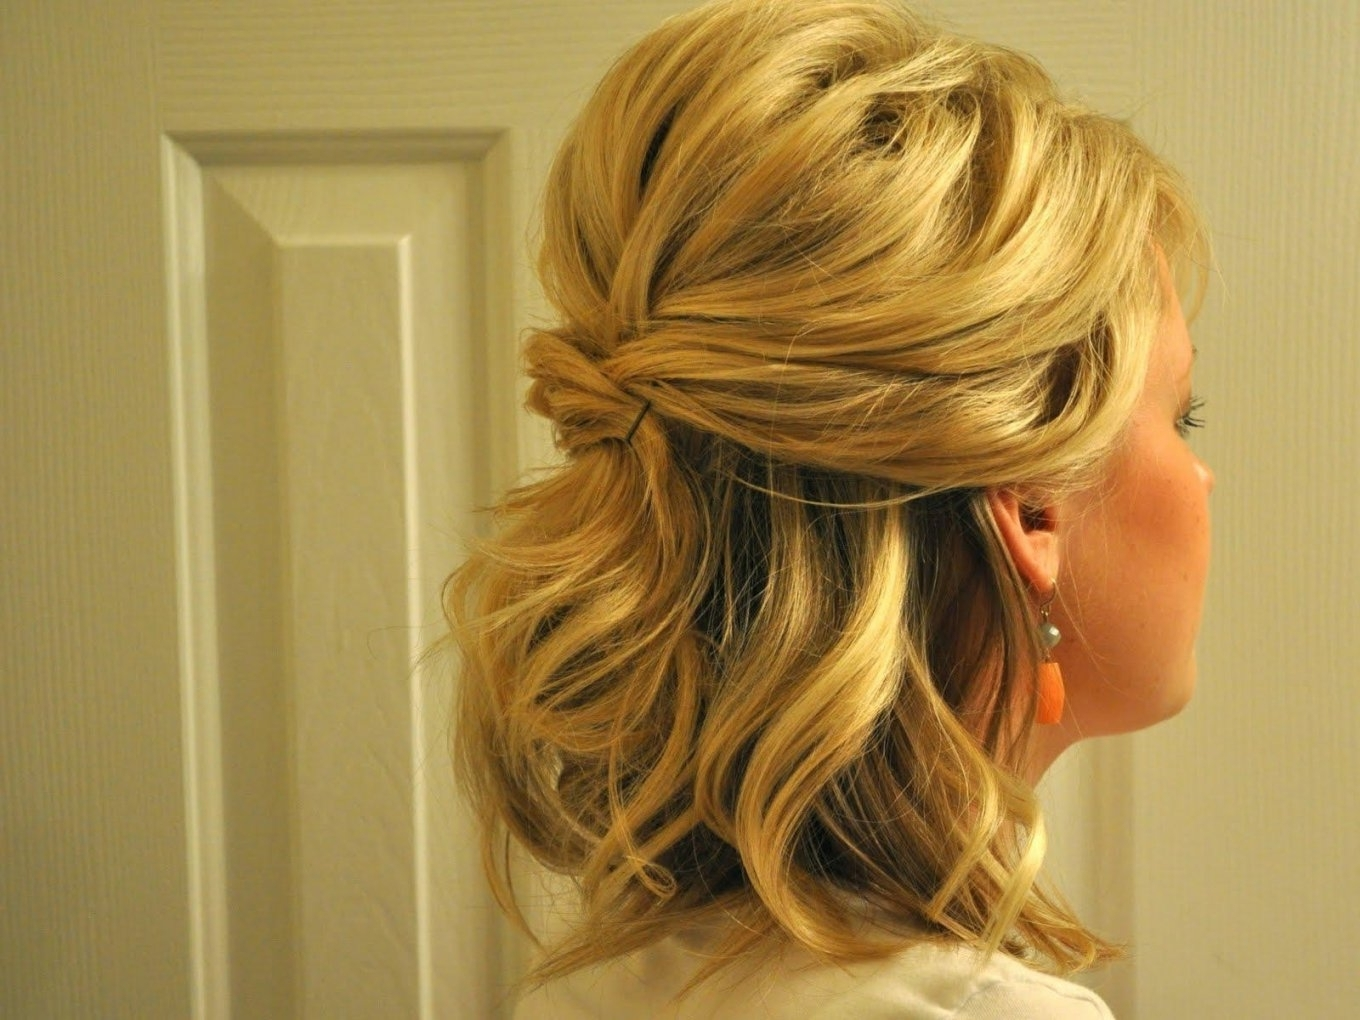 Latest Wedding Hairstyles For Shoulder Length Layered Hair In Wedding Hairstyles For Bridesmaids With Medium Length Hair (View 11 of 15)